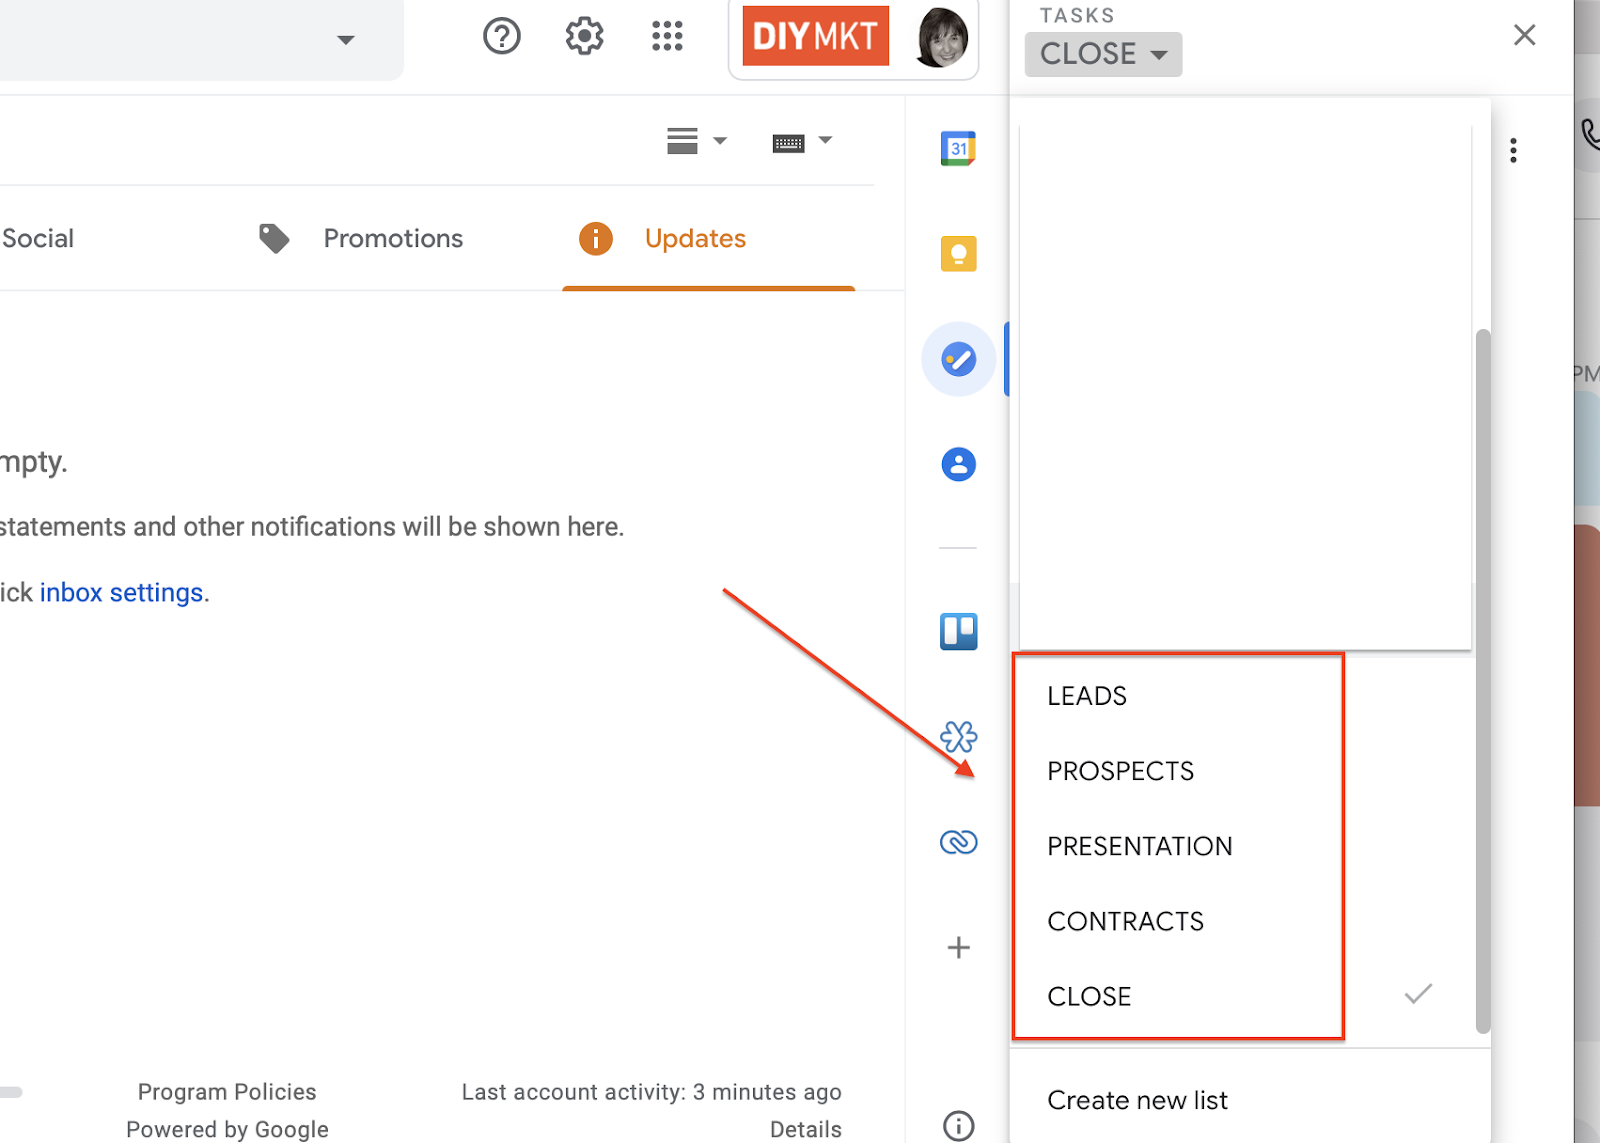 Use Task lists in Gmail as a de facto pipeline